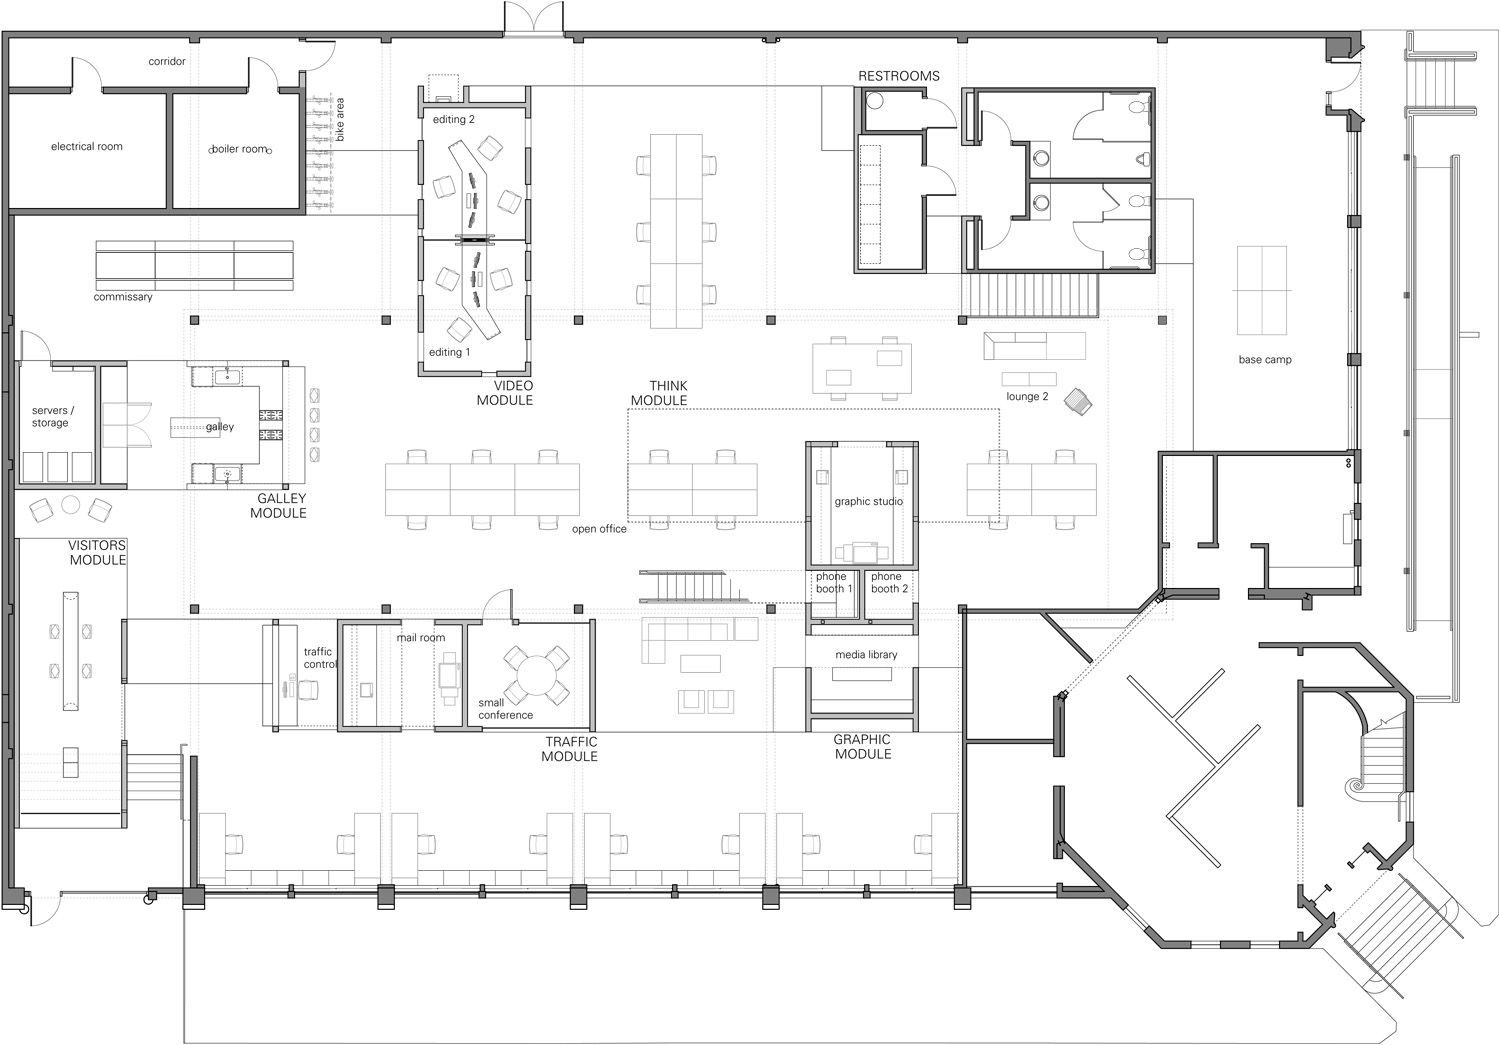 North Skylab Architecture Office Floor Plan Office Floor And Architectural Floor Plans